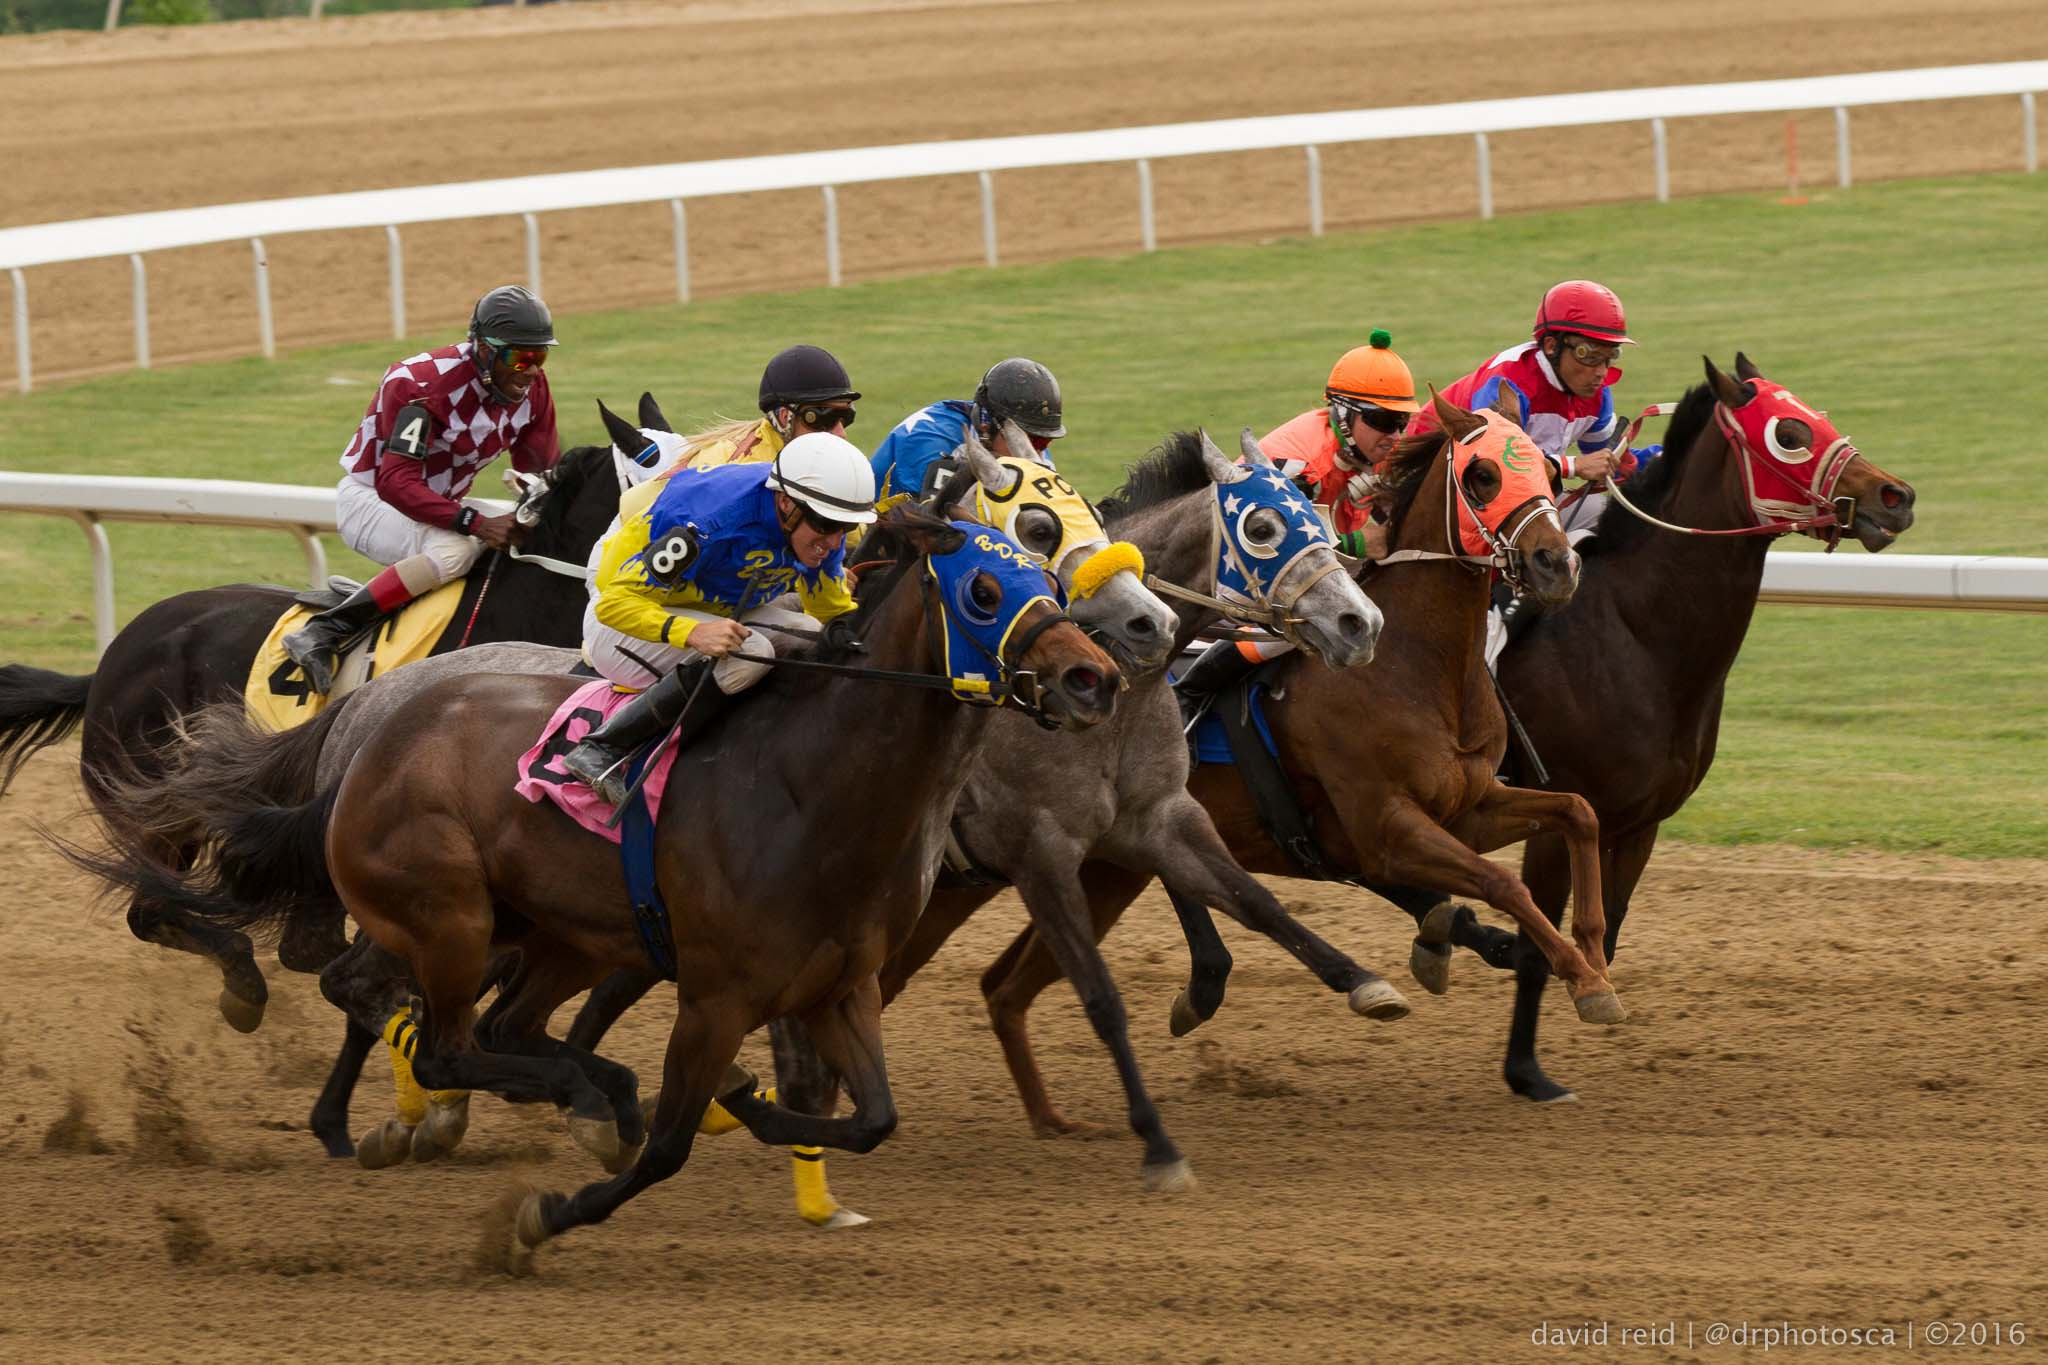 Quarter horse racing photographer David Reid